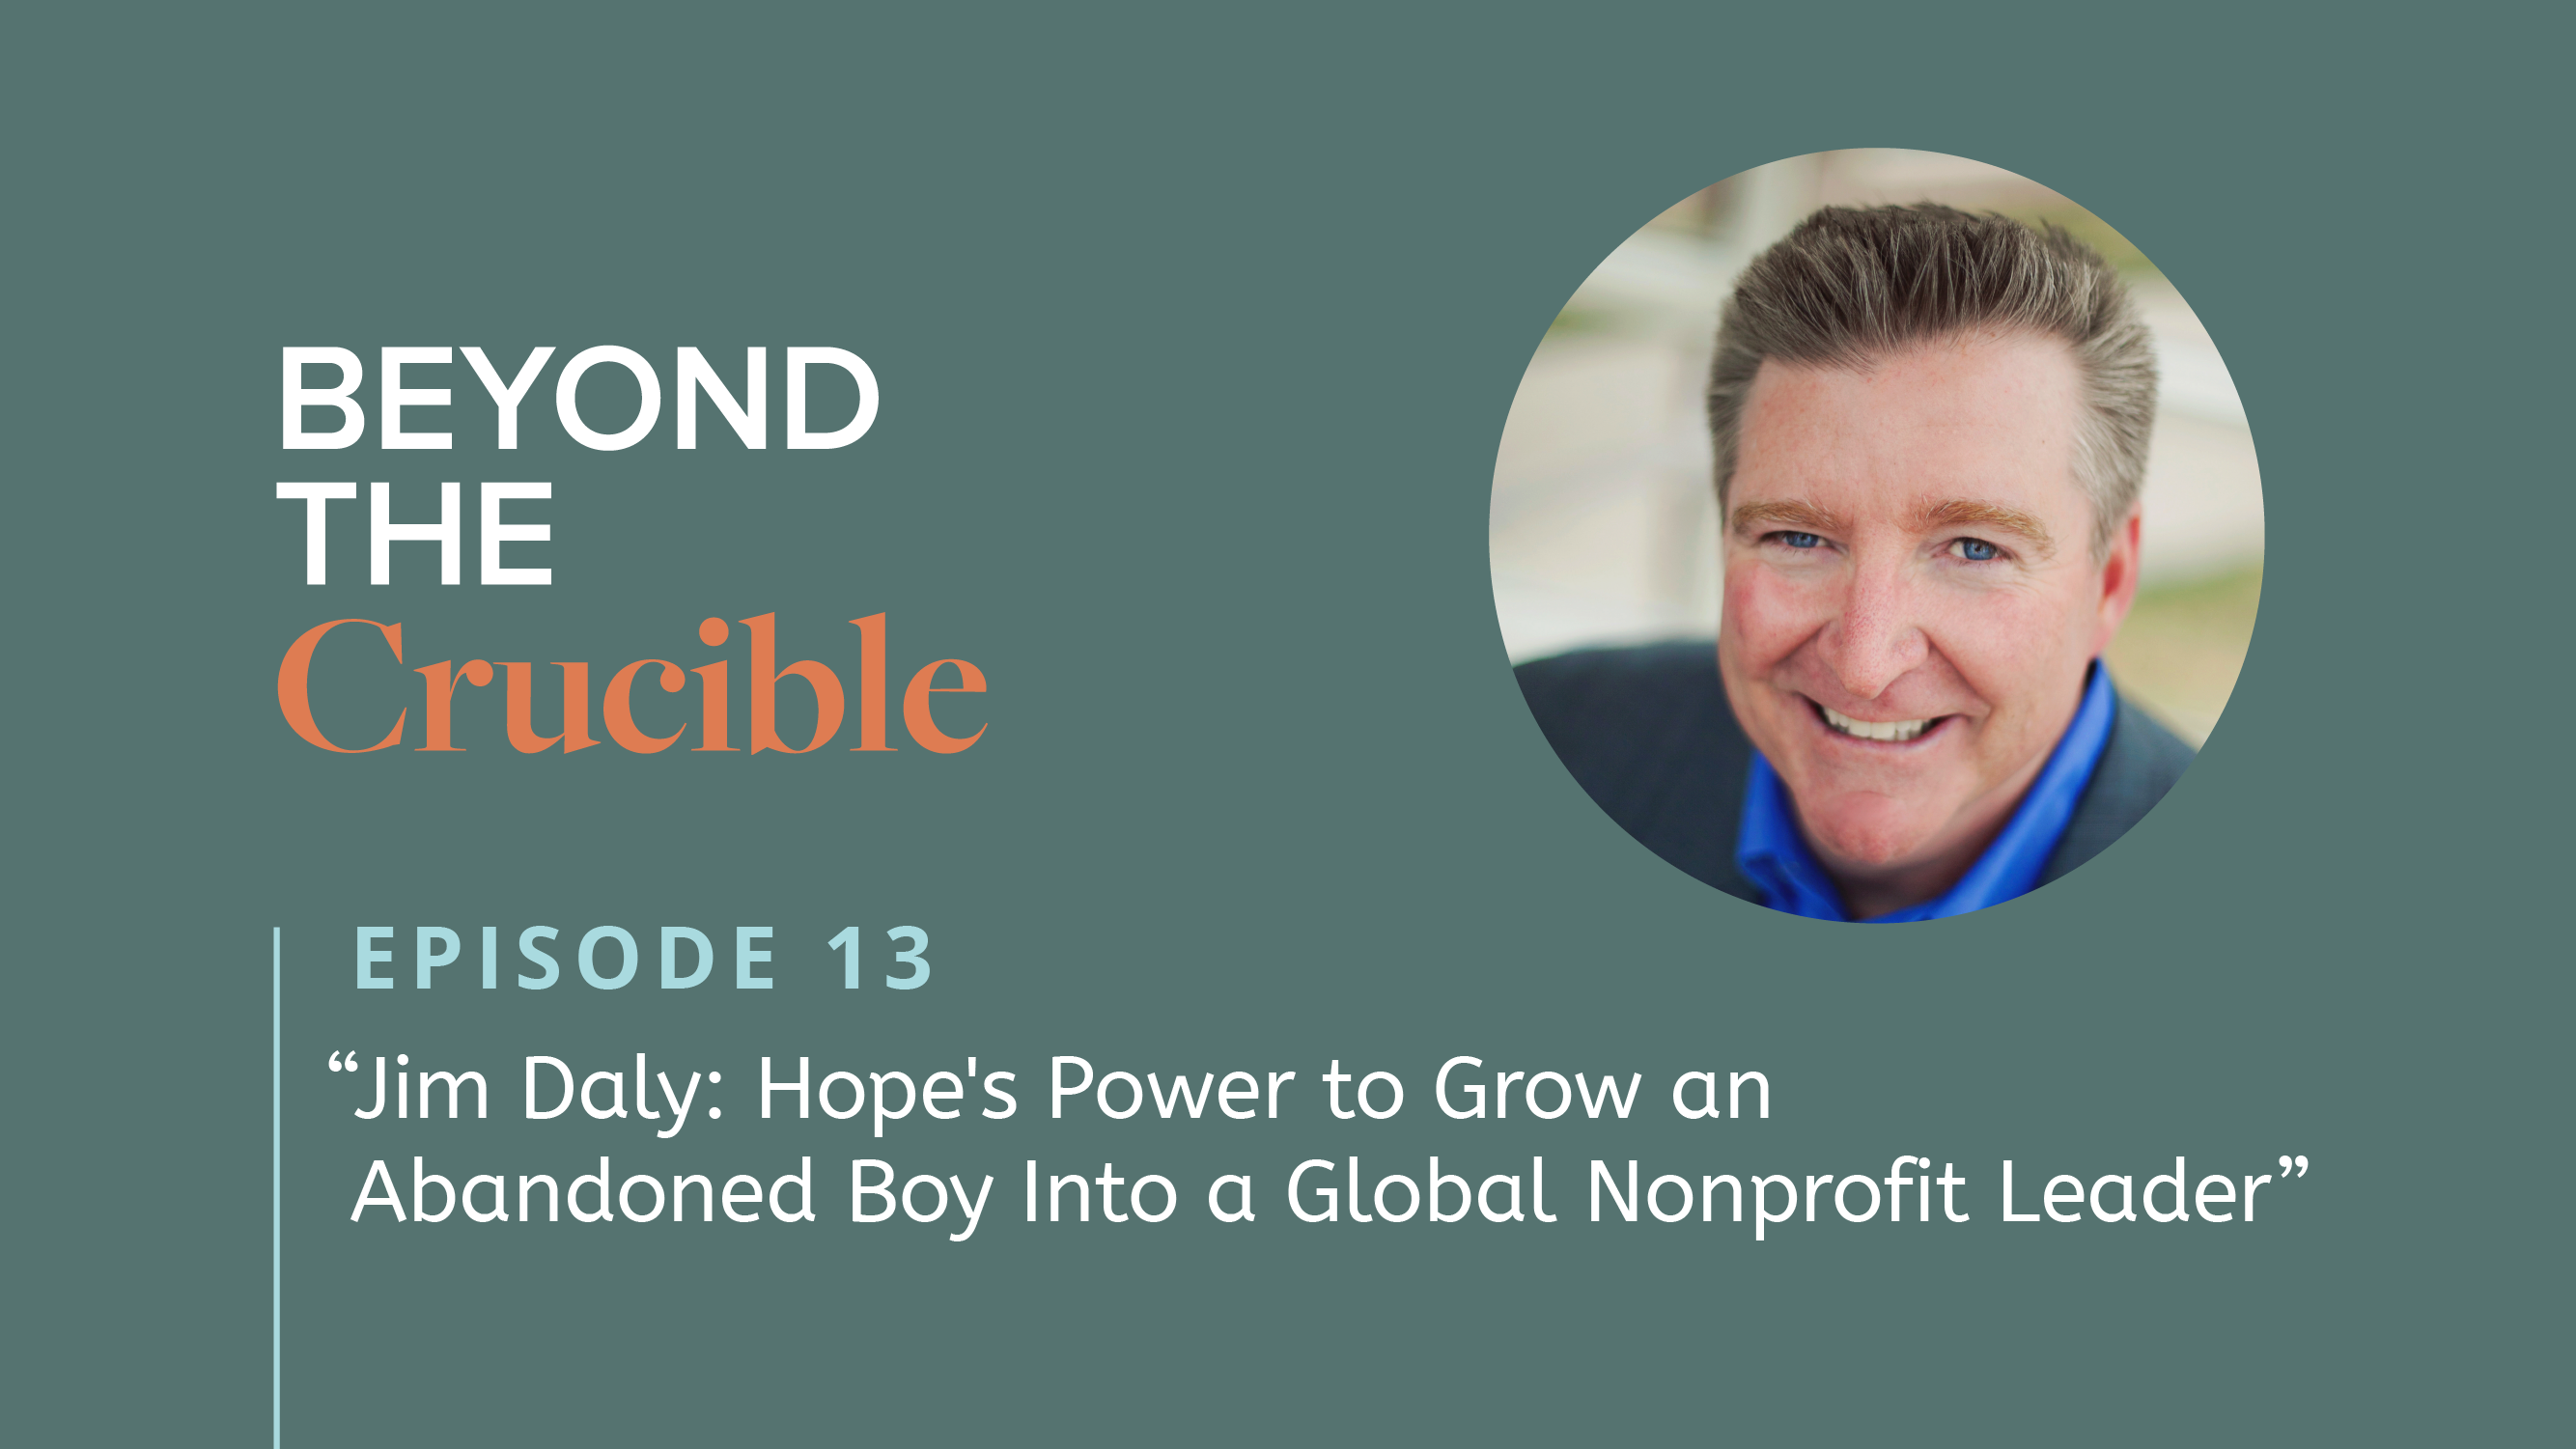 Jim Daly: Hope's Power to Grow an Abandoned Boy Into a Global Nonprofit Leader #13